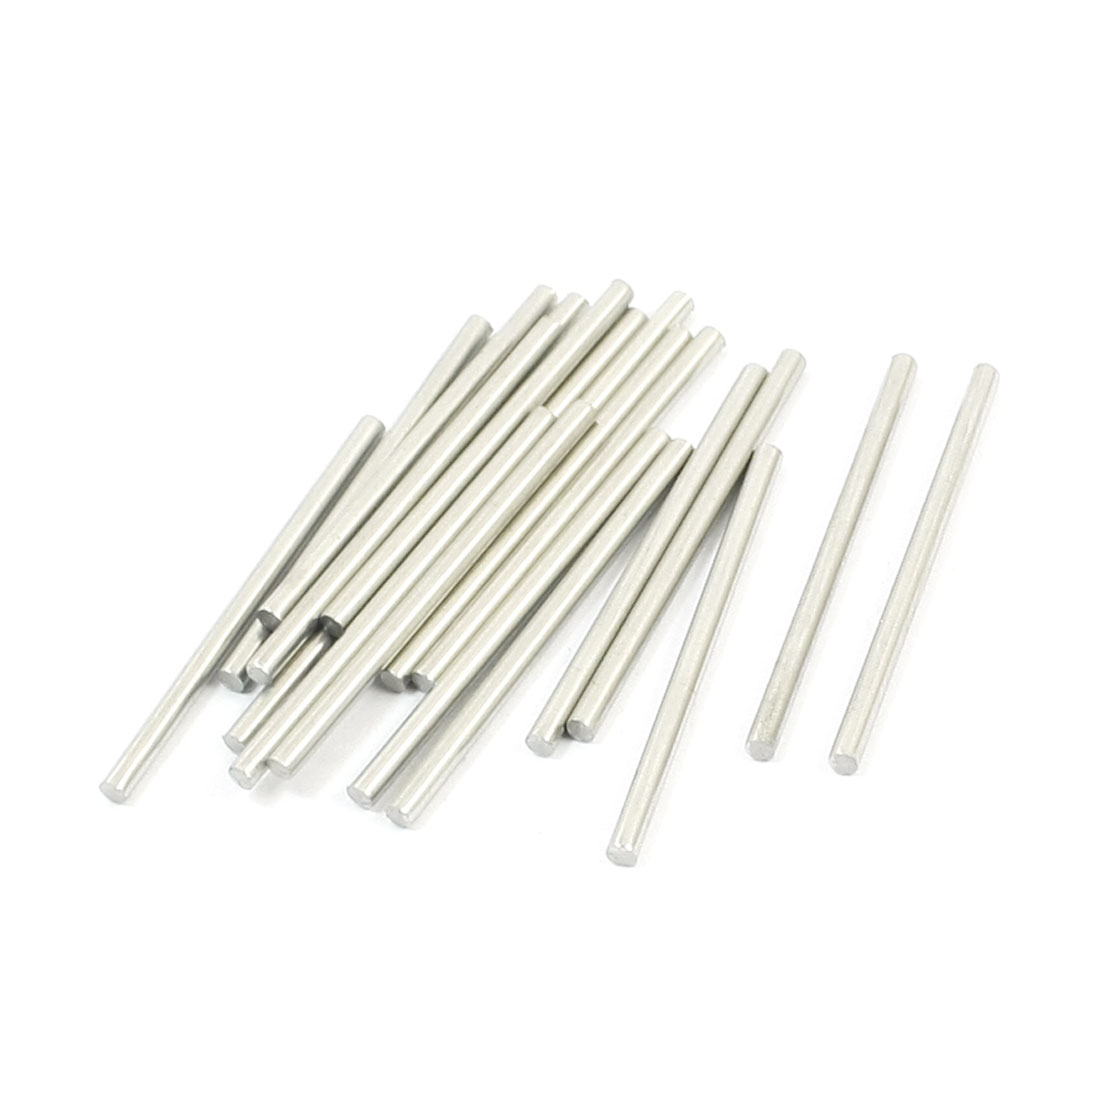 20PCS 35mm x 2mm Stainless Steel Round Rod Axle Bars for RC Car Toys